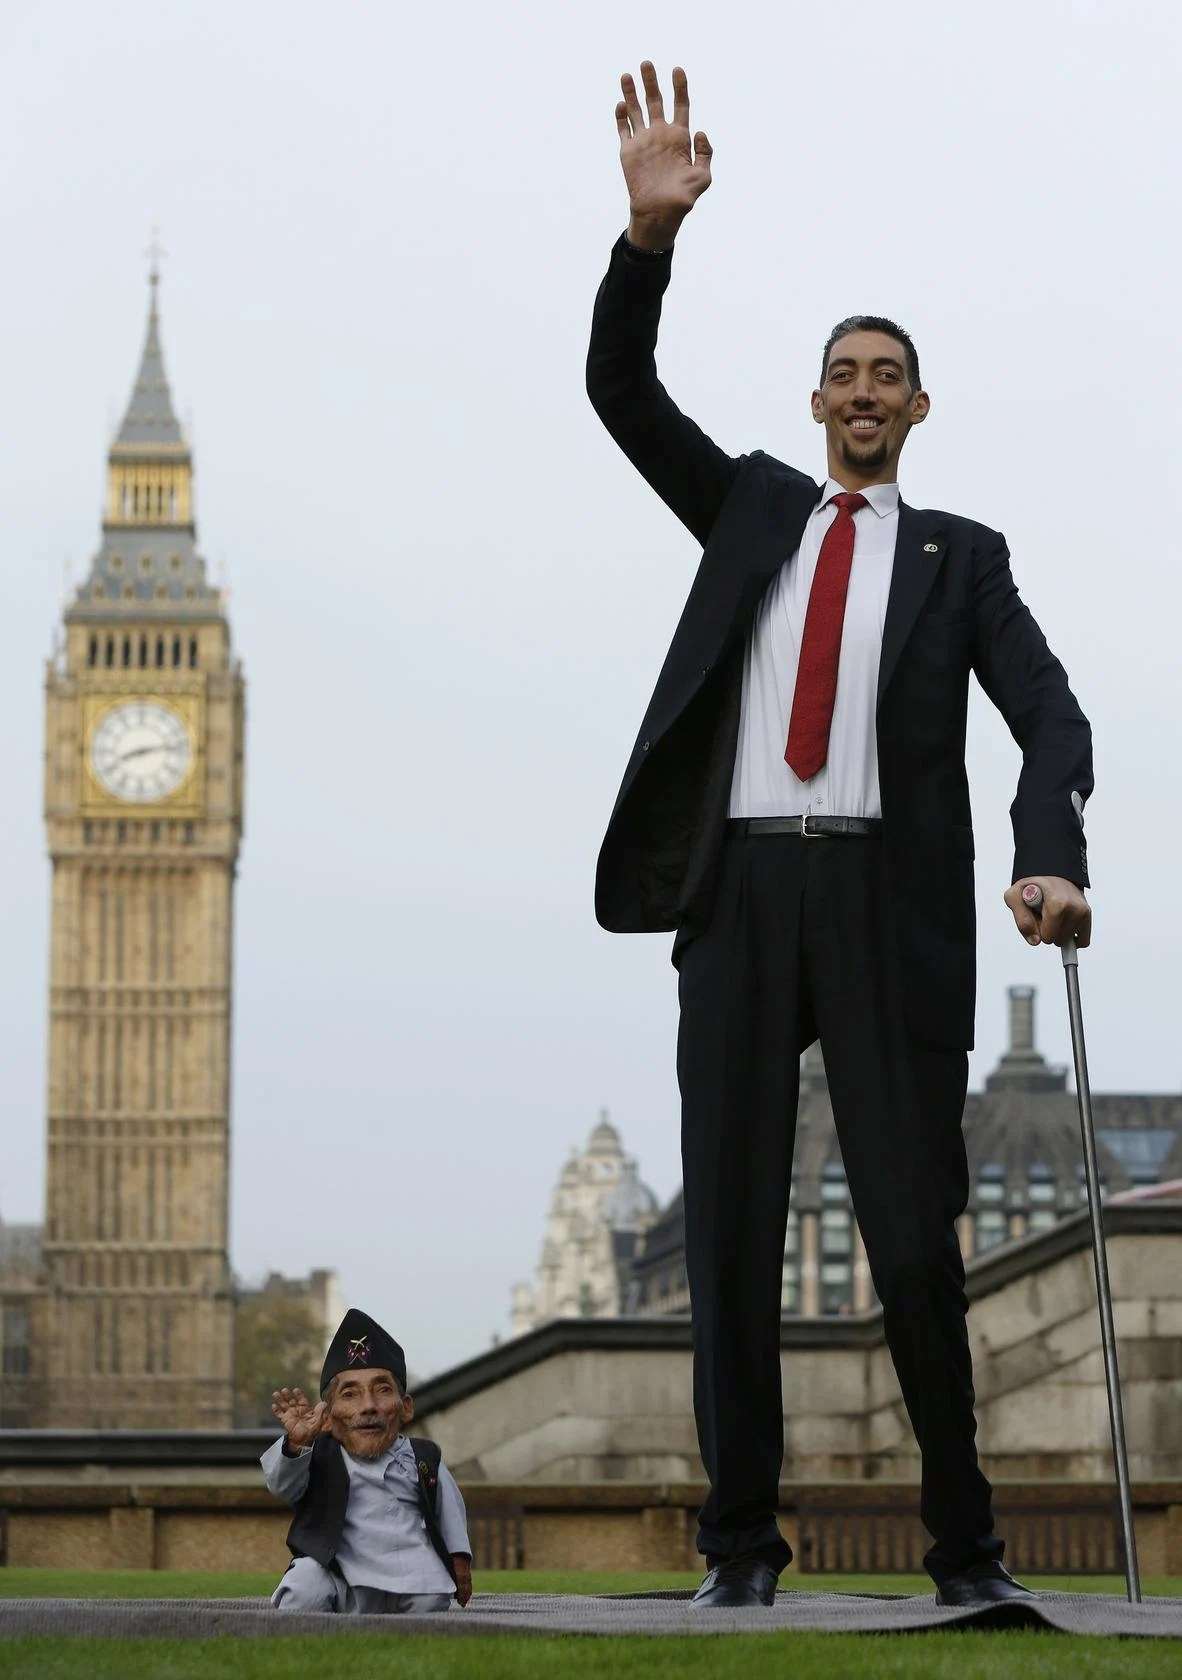 World S Tallest Man Meets His 55cm Counterpart For World